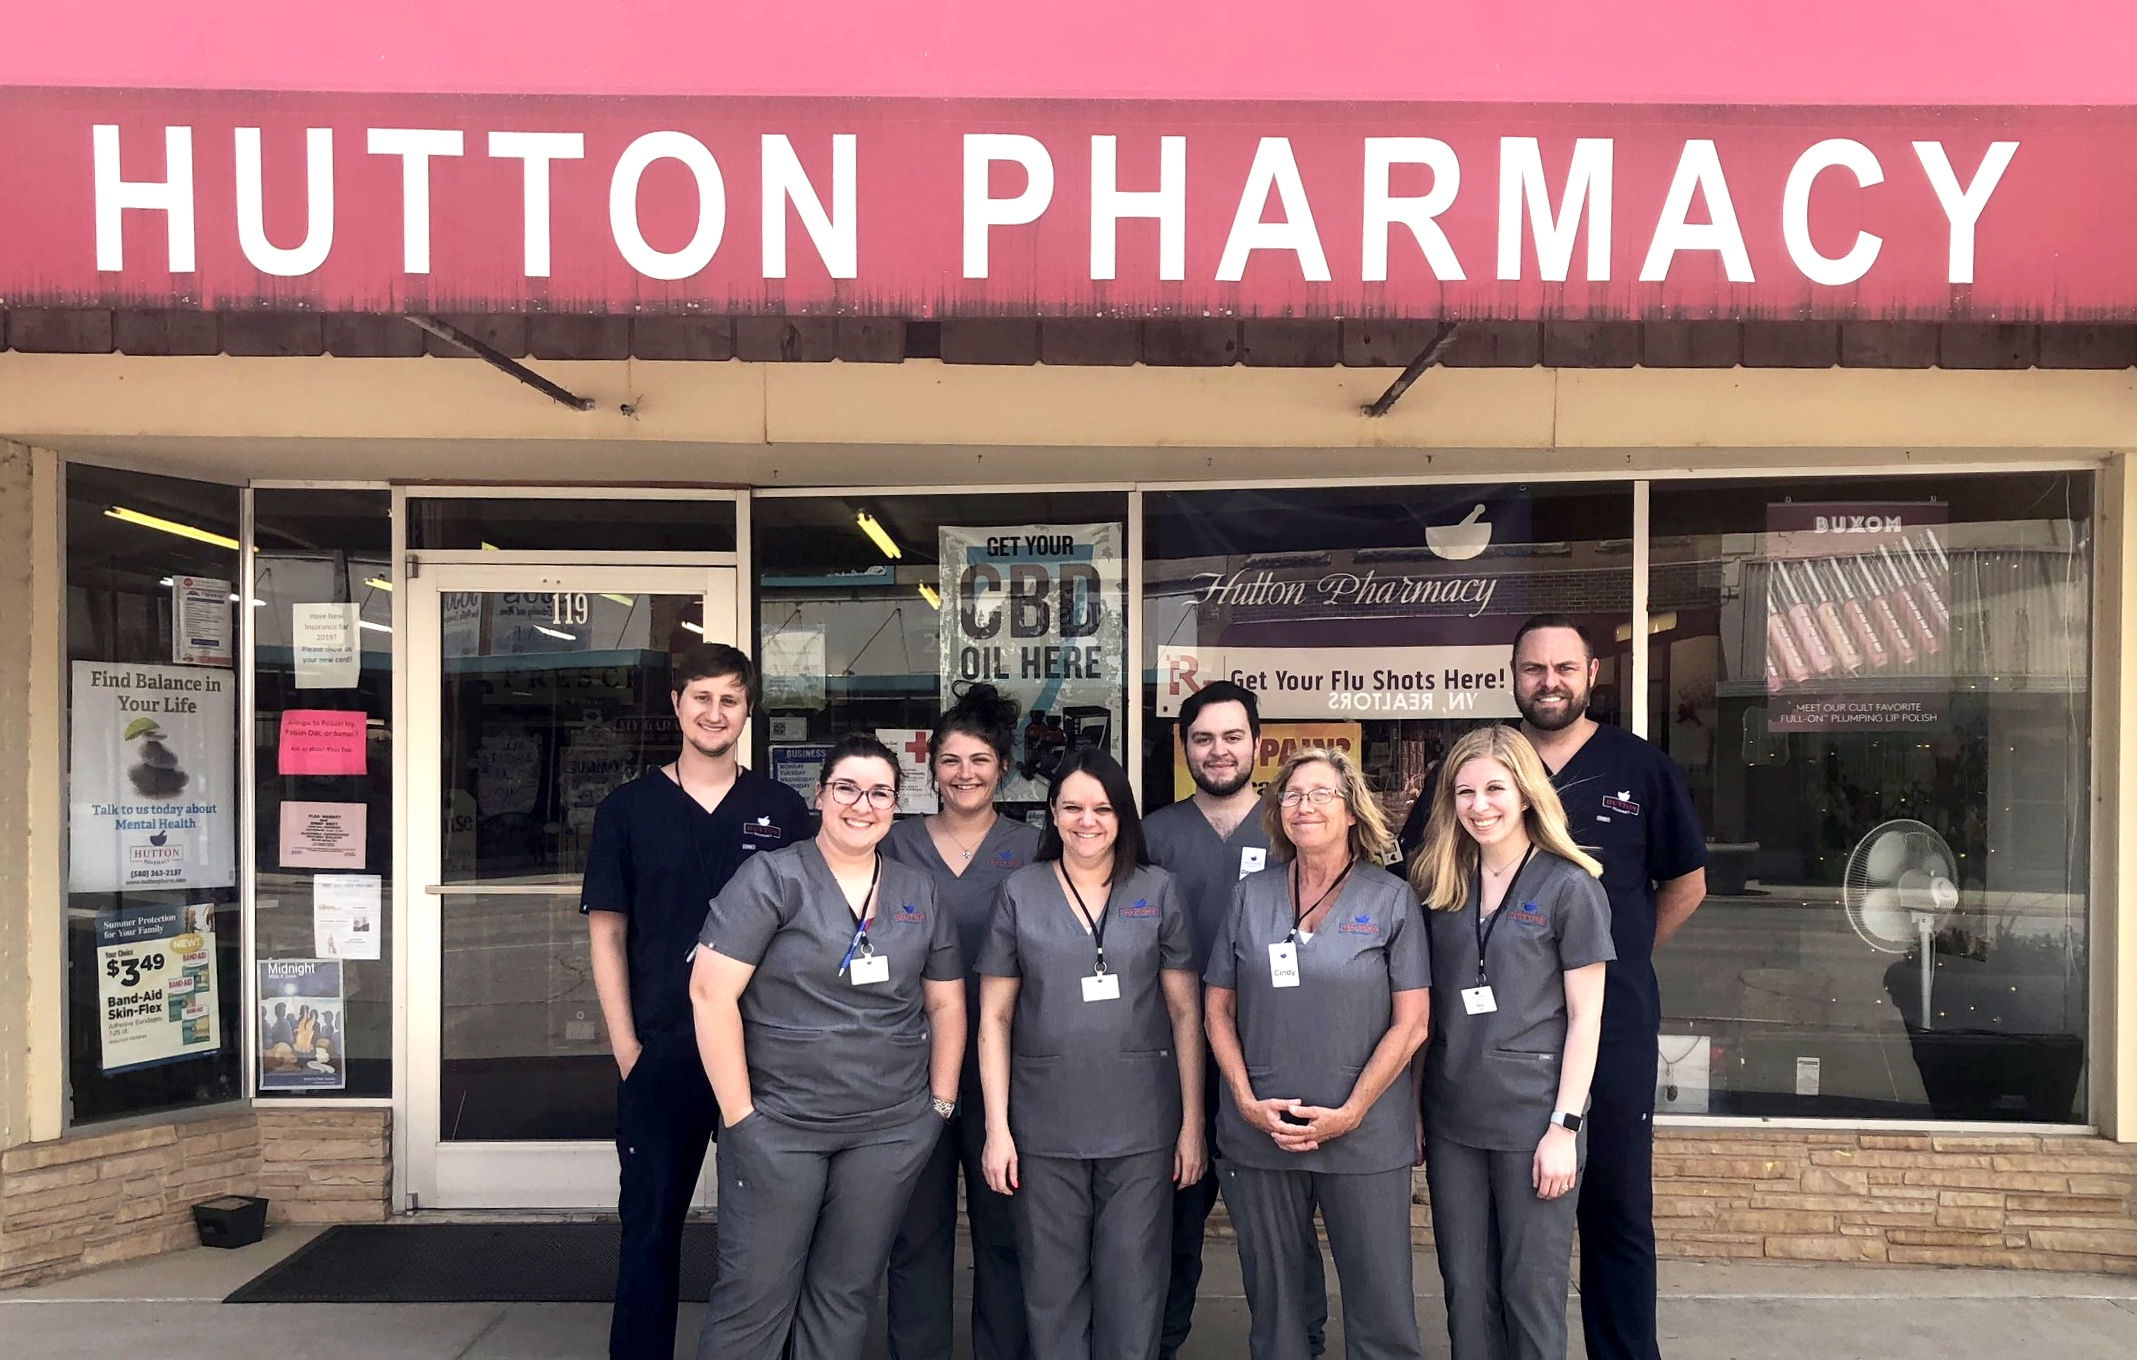 Our people make your pharmacy experience different - Get to know us (Click here)